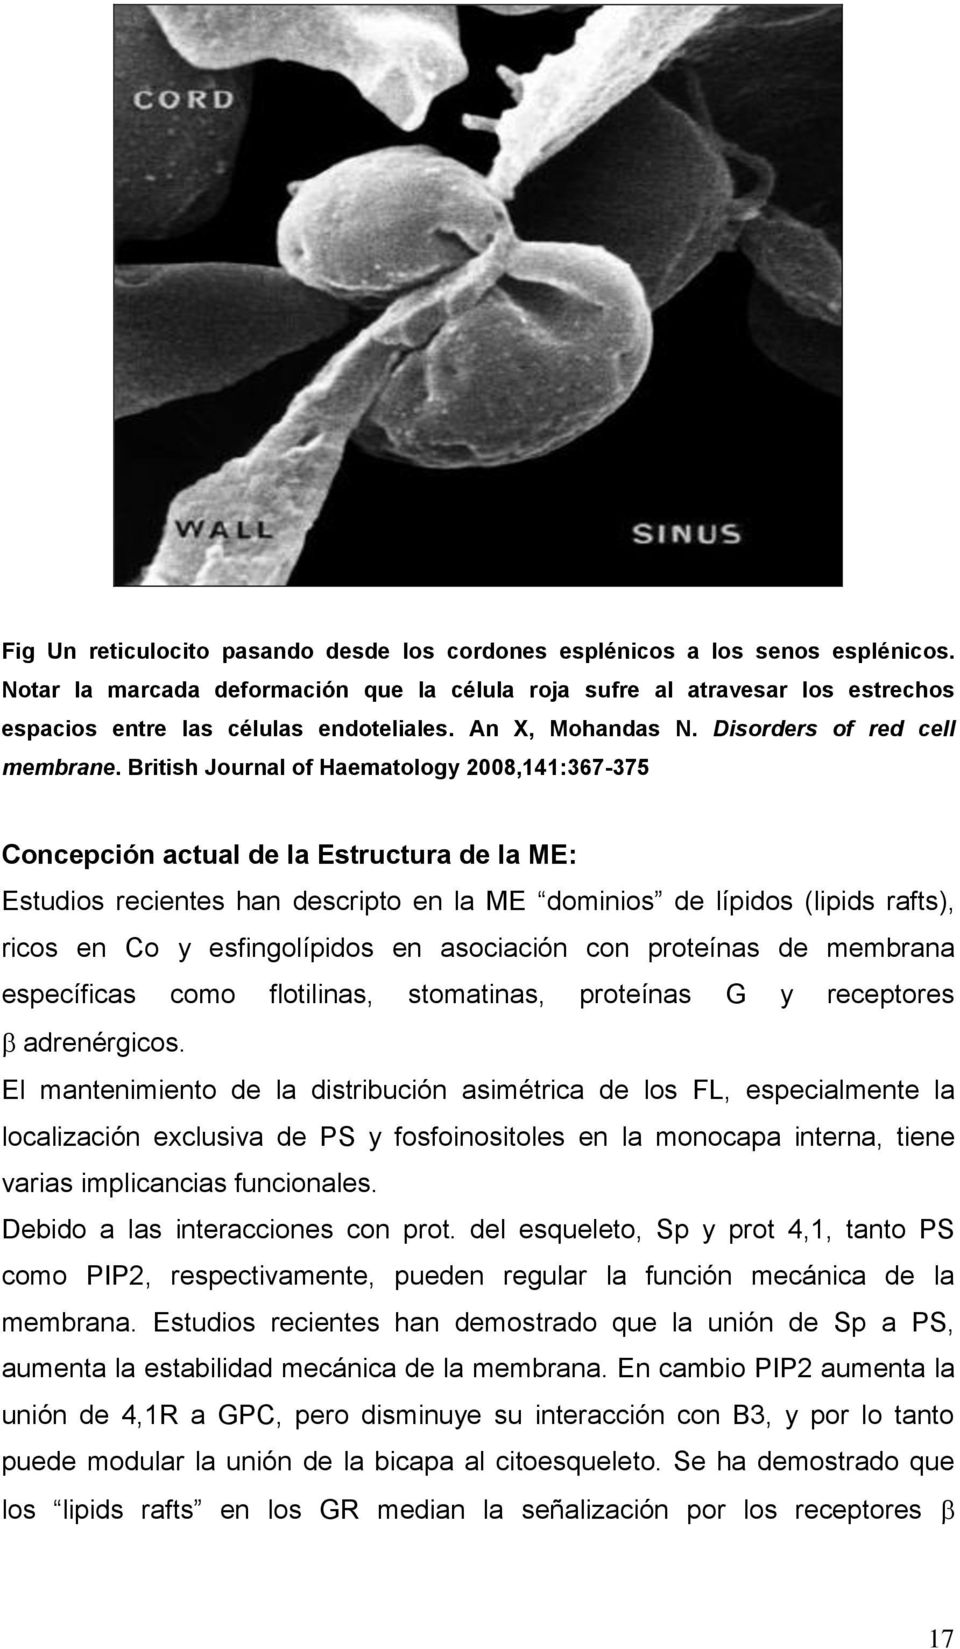 British Journal of Haematology 2008,141:367-375 Concepción actual de la Estructura de la ME: Estudios recientes han descripto en la ME dominios de lípidos (lipids rafts), ricos en Co y esfingolípidos